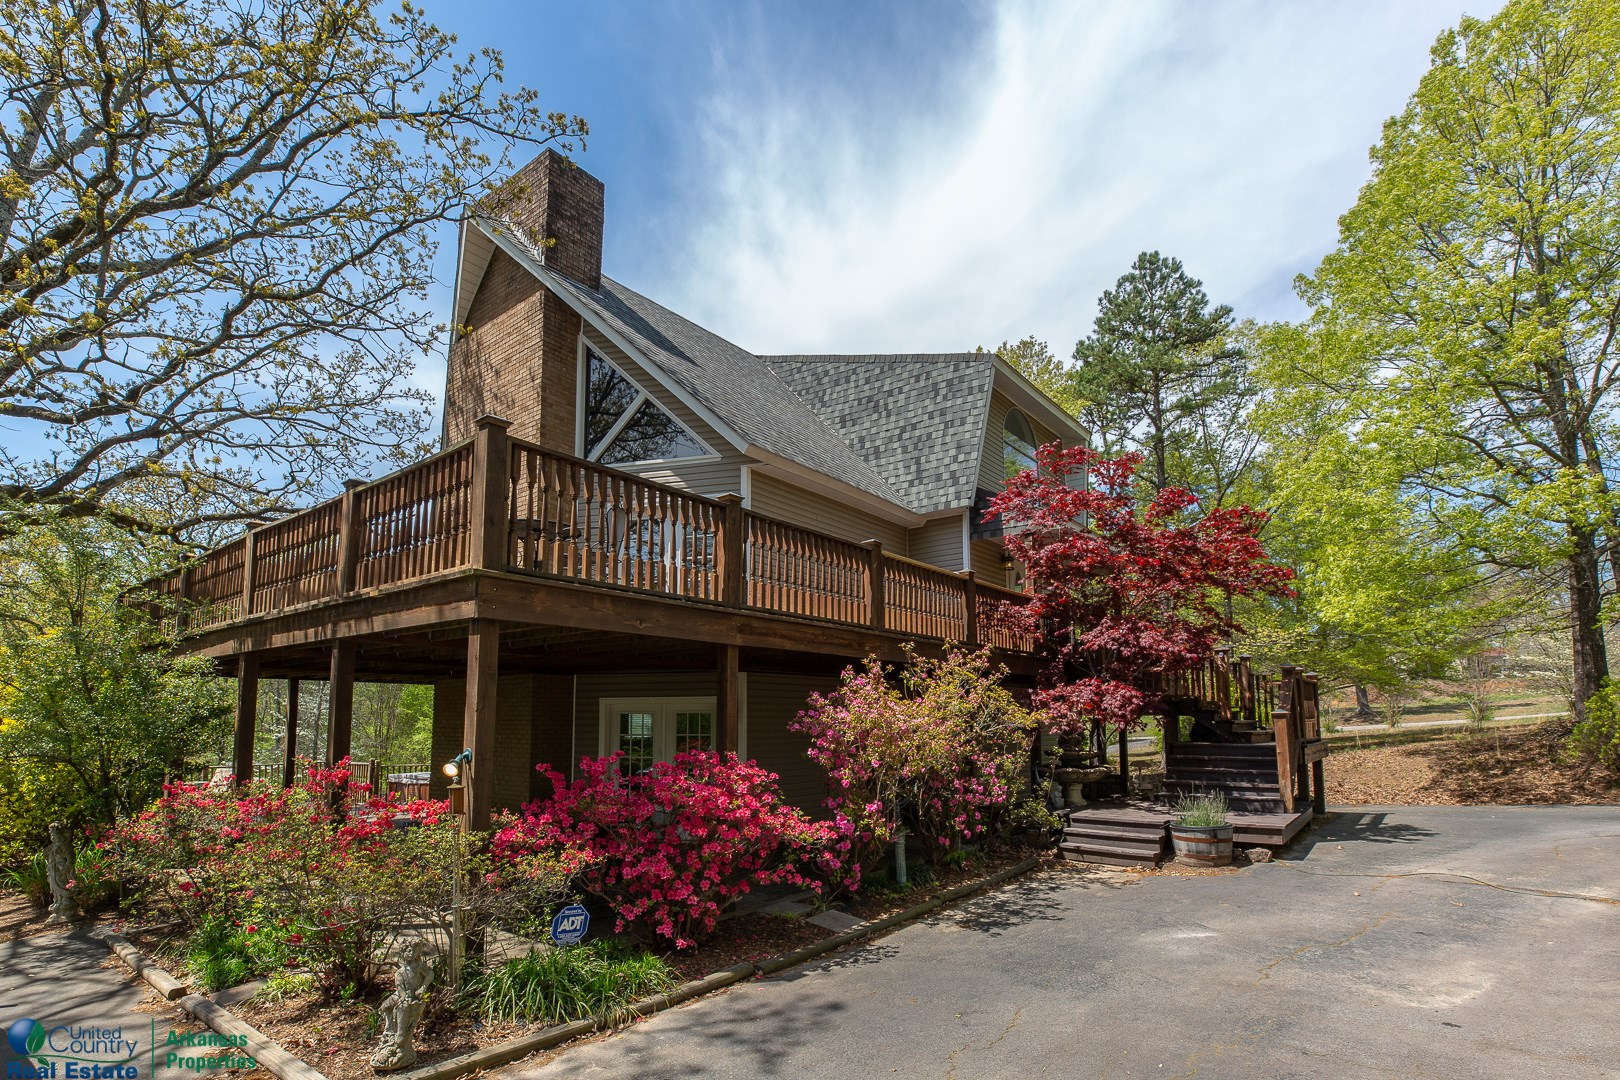 Multi-level Bed & Breakfast in Ouachita Mtns. of Arkansas